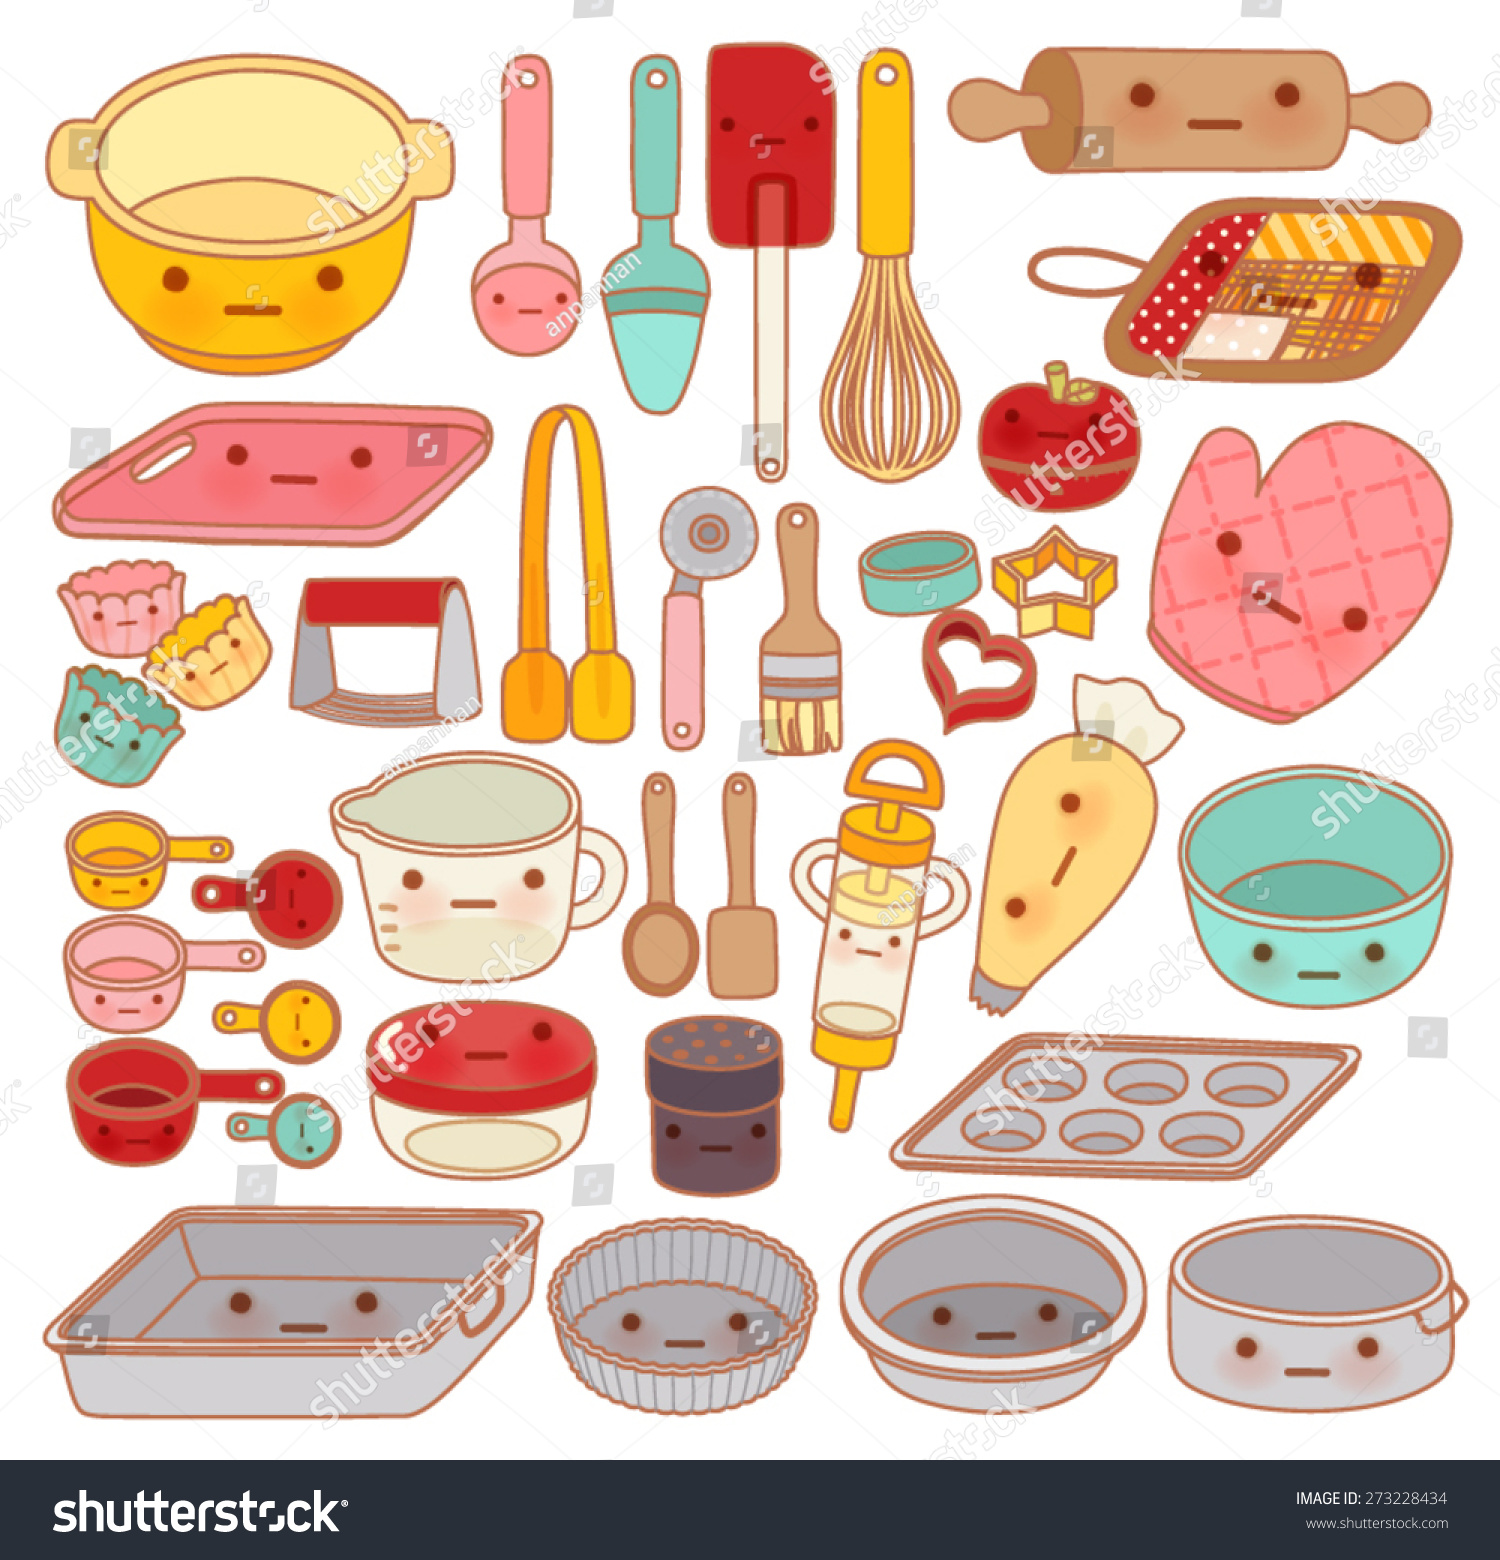 Collection Lovely Pastry Tool Equipment Cute Stock Vector